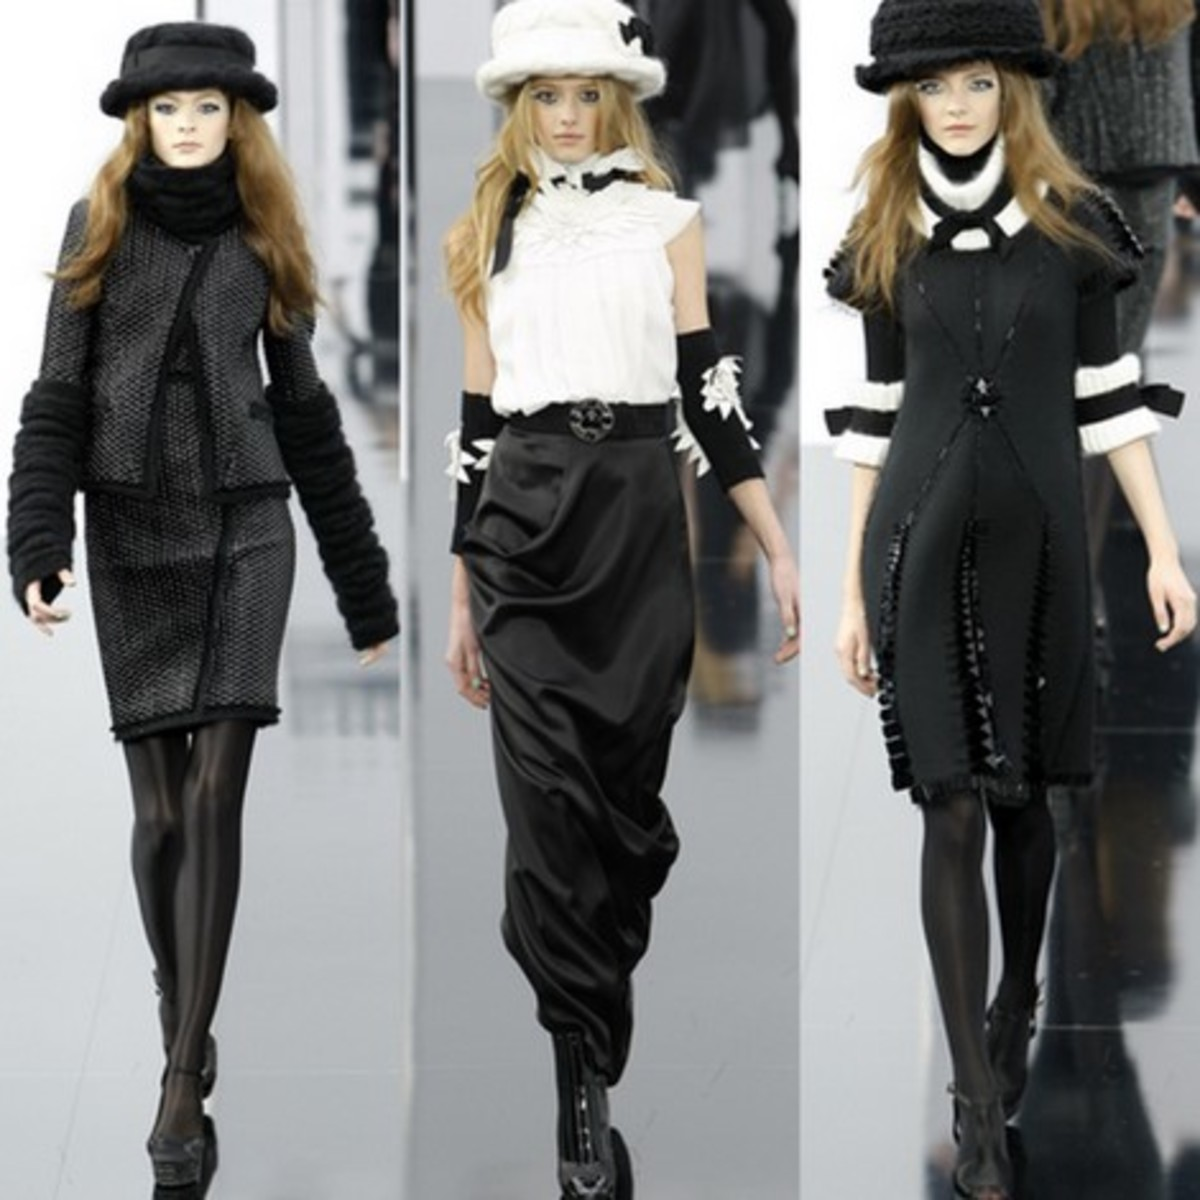 Even High Fashion loves the arm warmers!